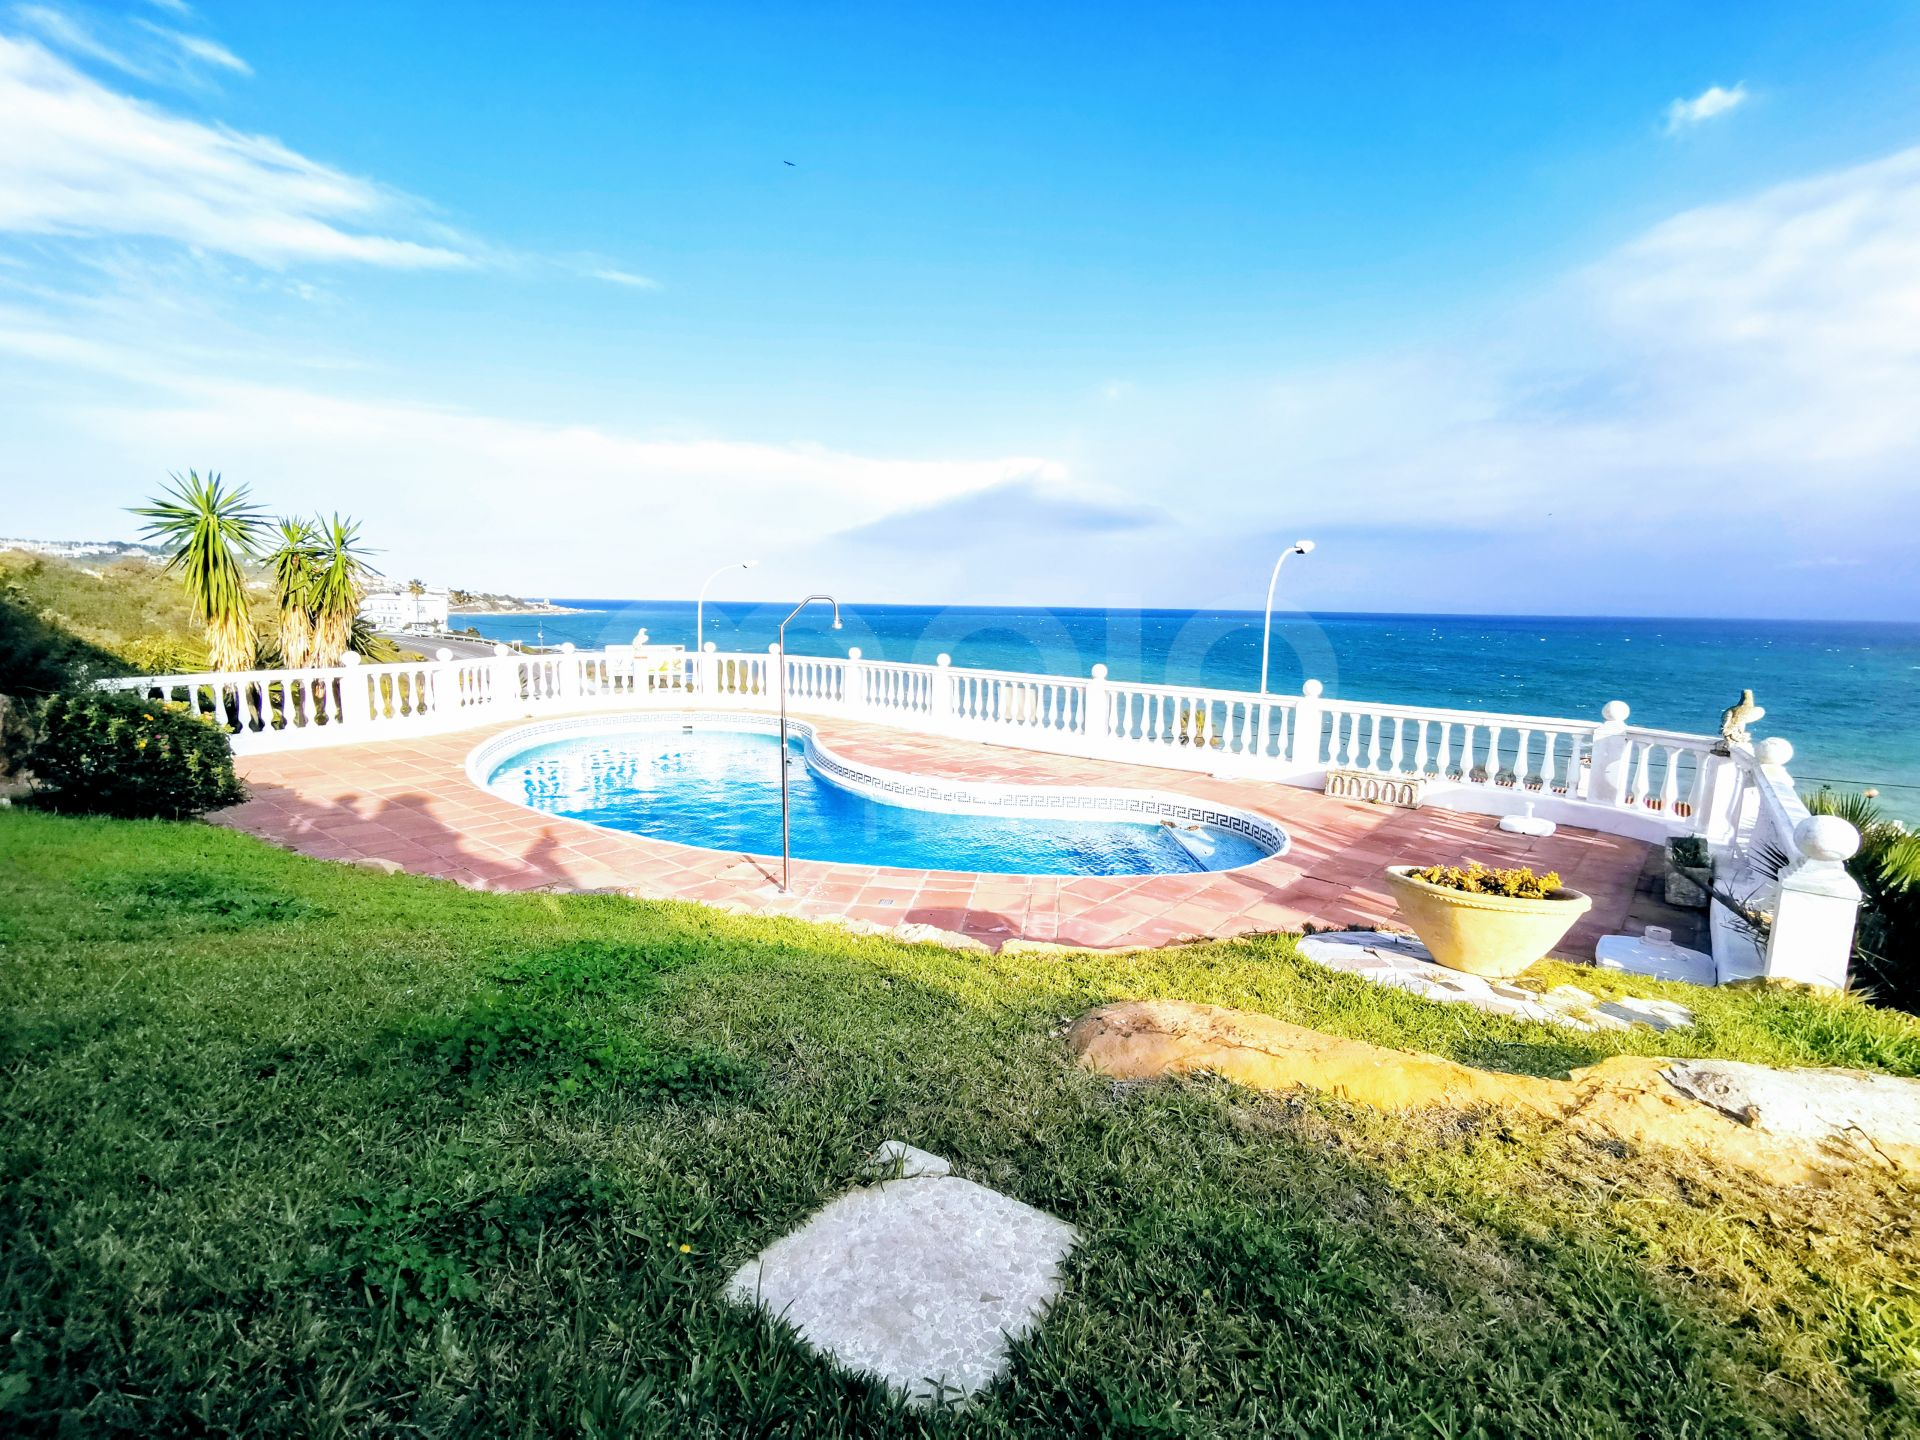 A traditional 4 bedroom villa in Torreguadiaro with panoramic Mediterranean sea views.